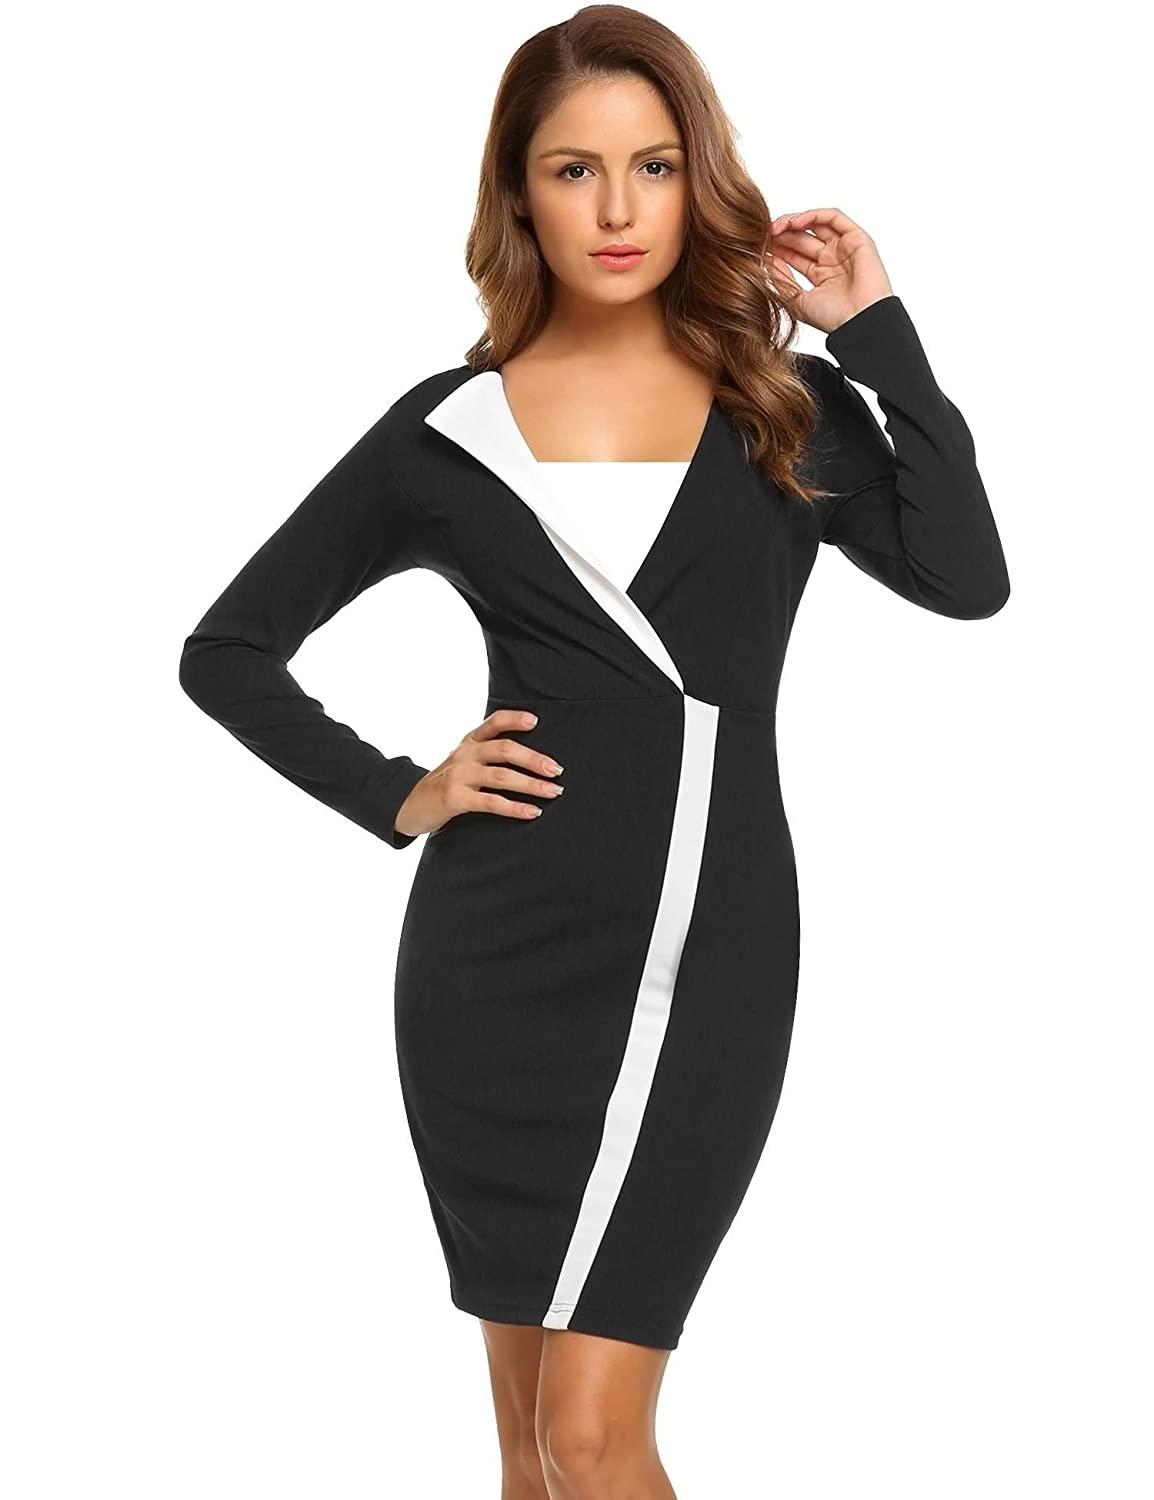 0d87d34b5bf87 The dress is made of a soft elastic fabric. The design of front V-neck  shows great slim fit and good temperament. With your high heels on